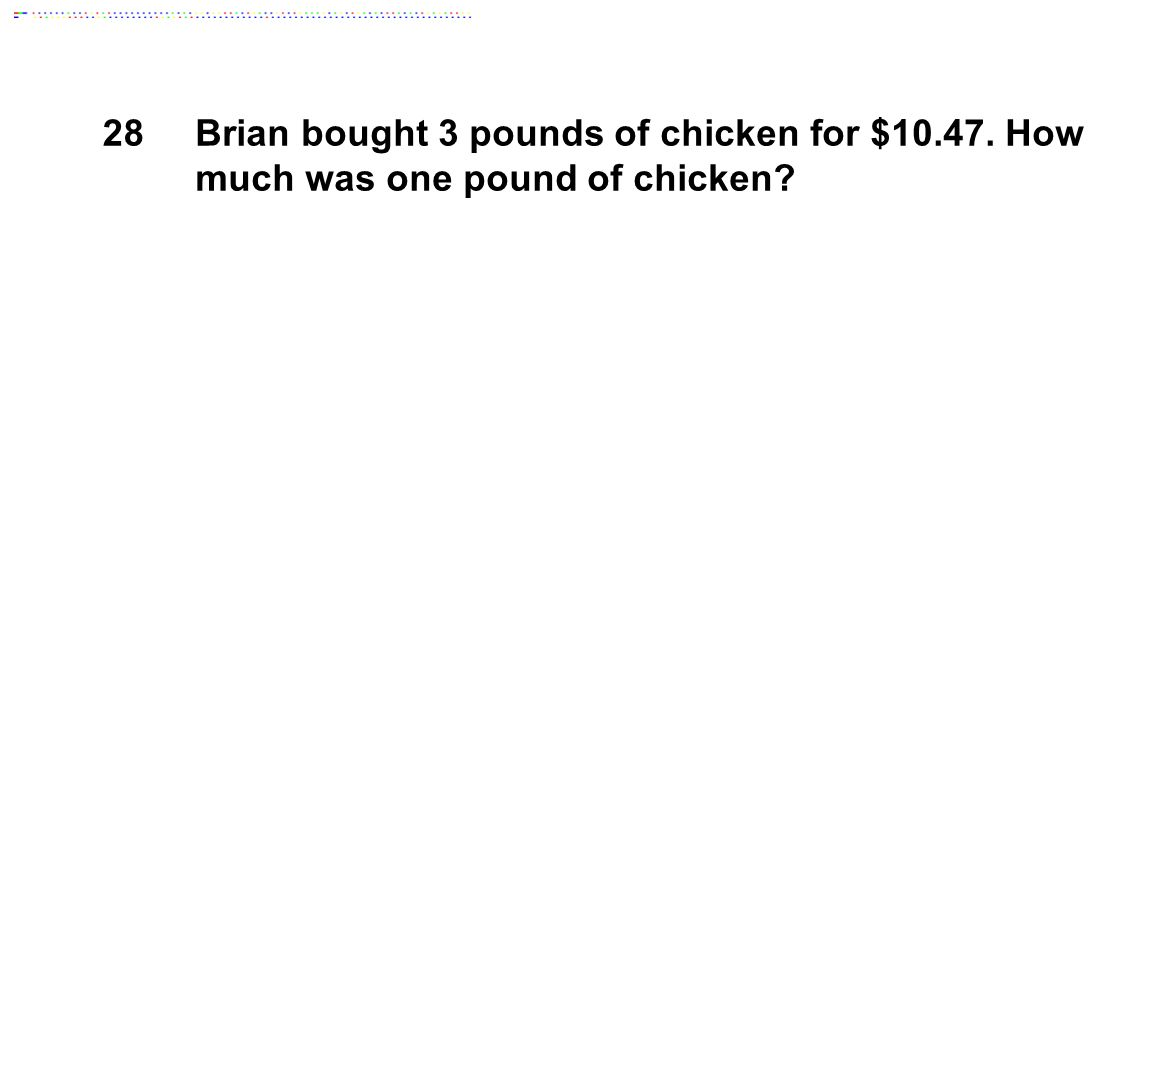 28Brian bought 3 pounds of chicken for $10.47. How much was one pound of chicken